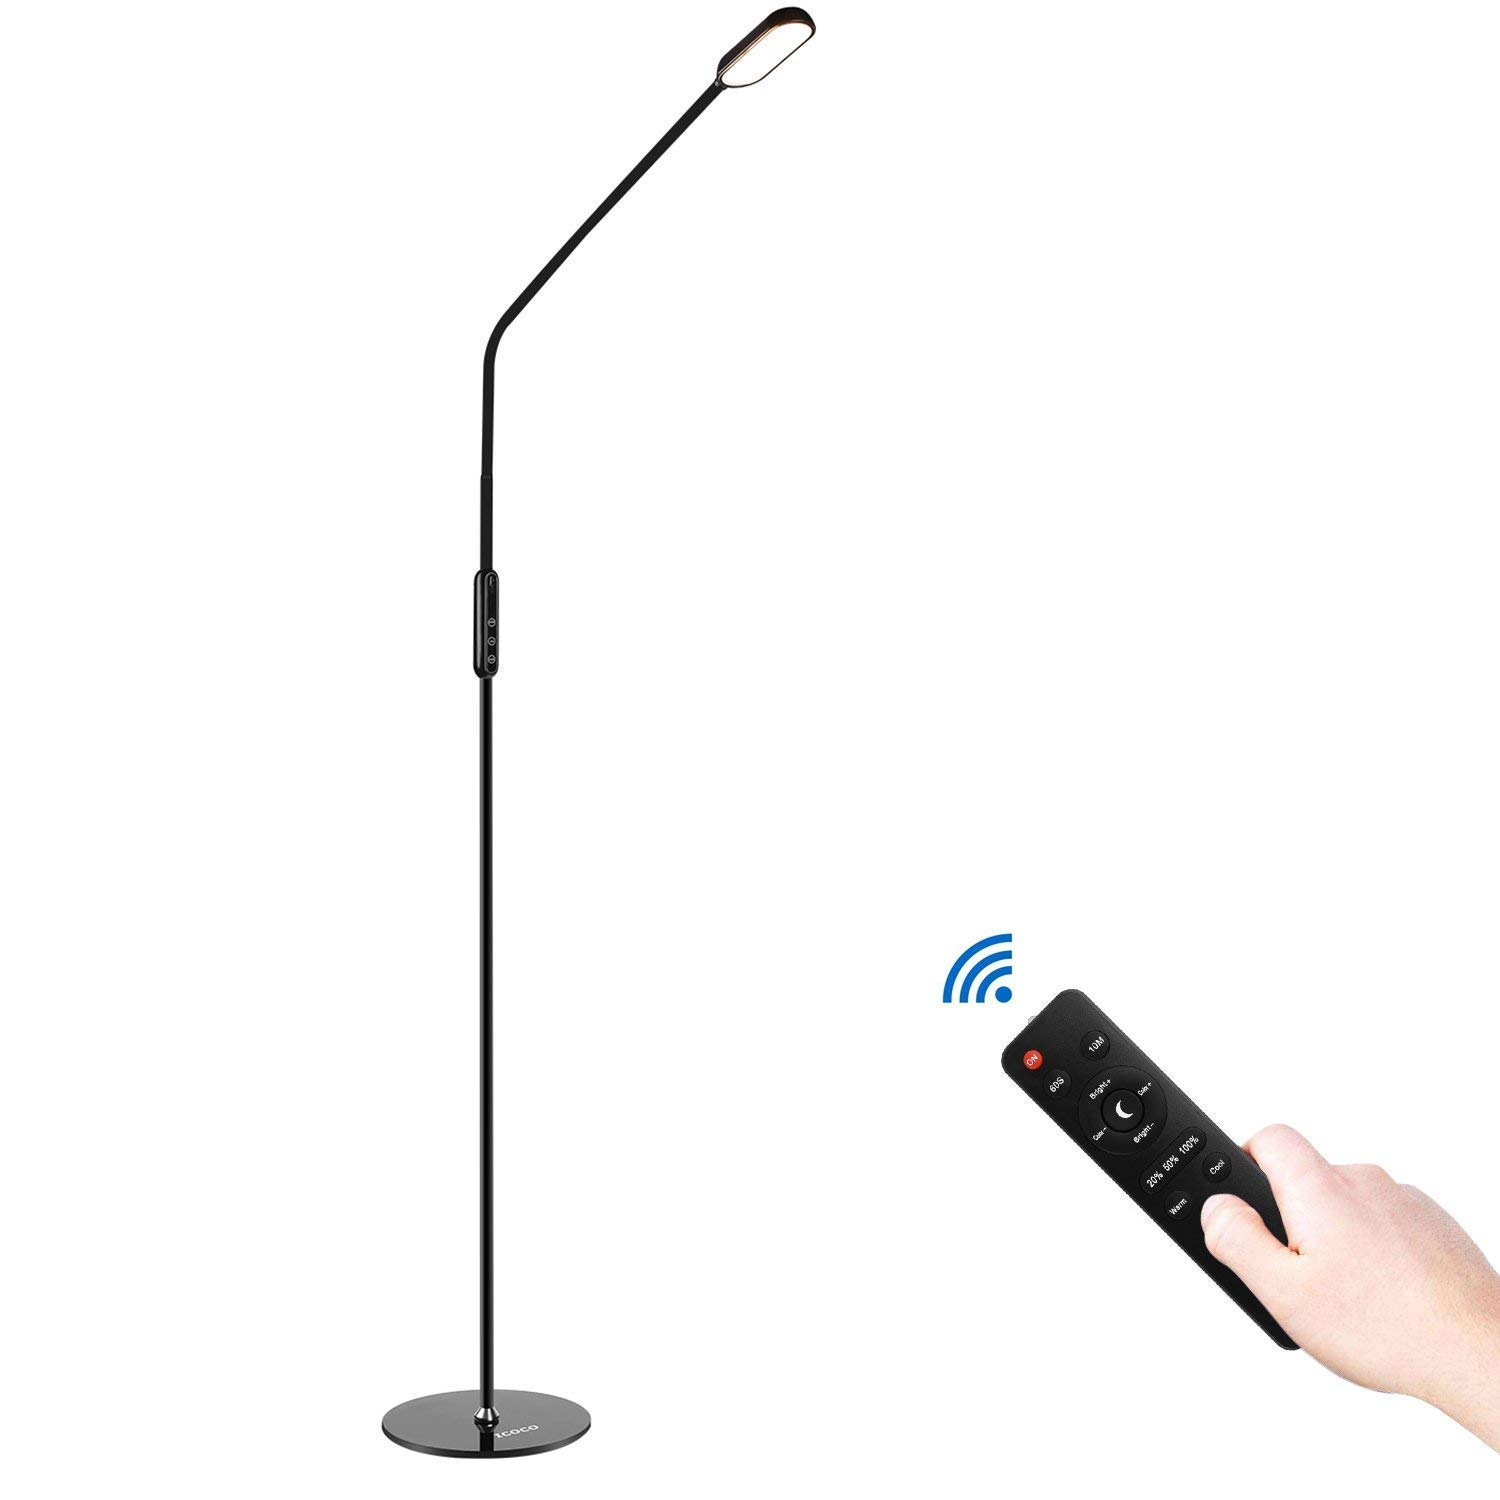 ICOCO Floor Lamp LED Standing Reading Desk Lamps with Remote Control Gooseneck Adjustable Pole Height 5 Levels Dimmable Brightness 5 Color Temperatures Lamp for Living Room Bedroom (9W)